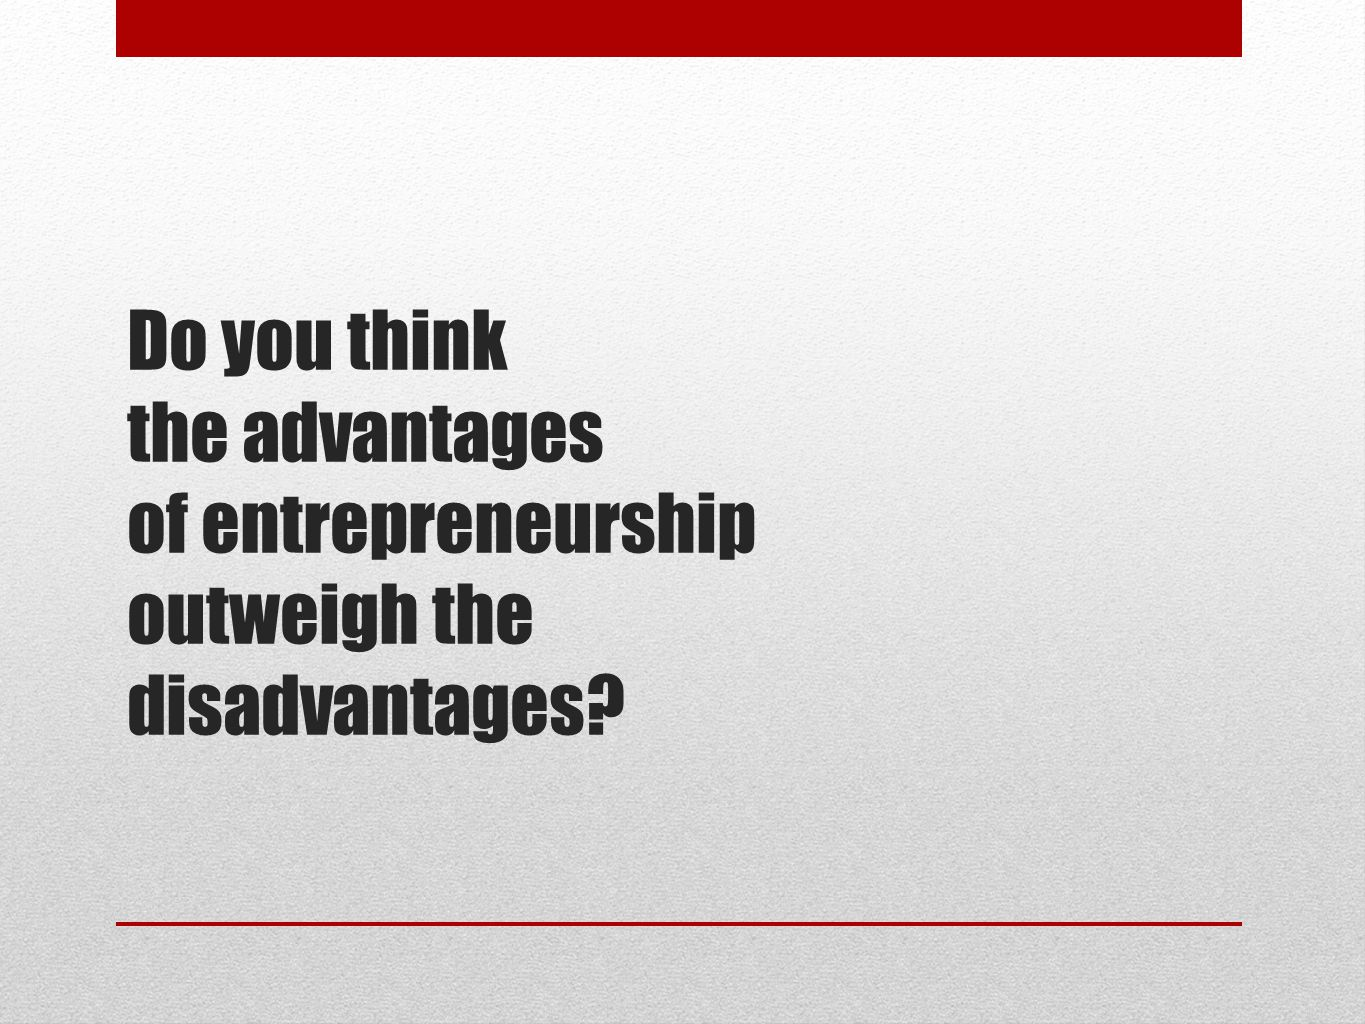 Do you think the advantages of entrepreneurship outweigh the disadvantages